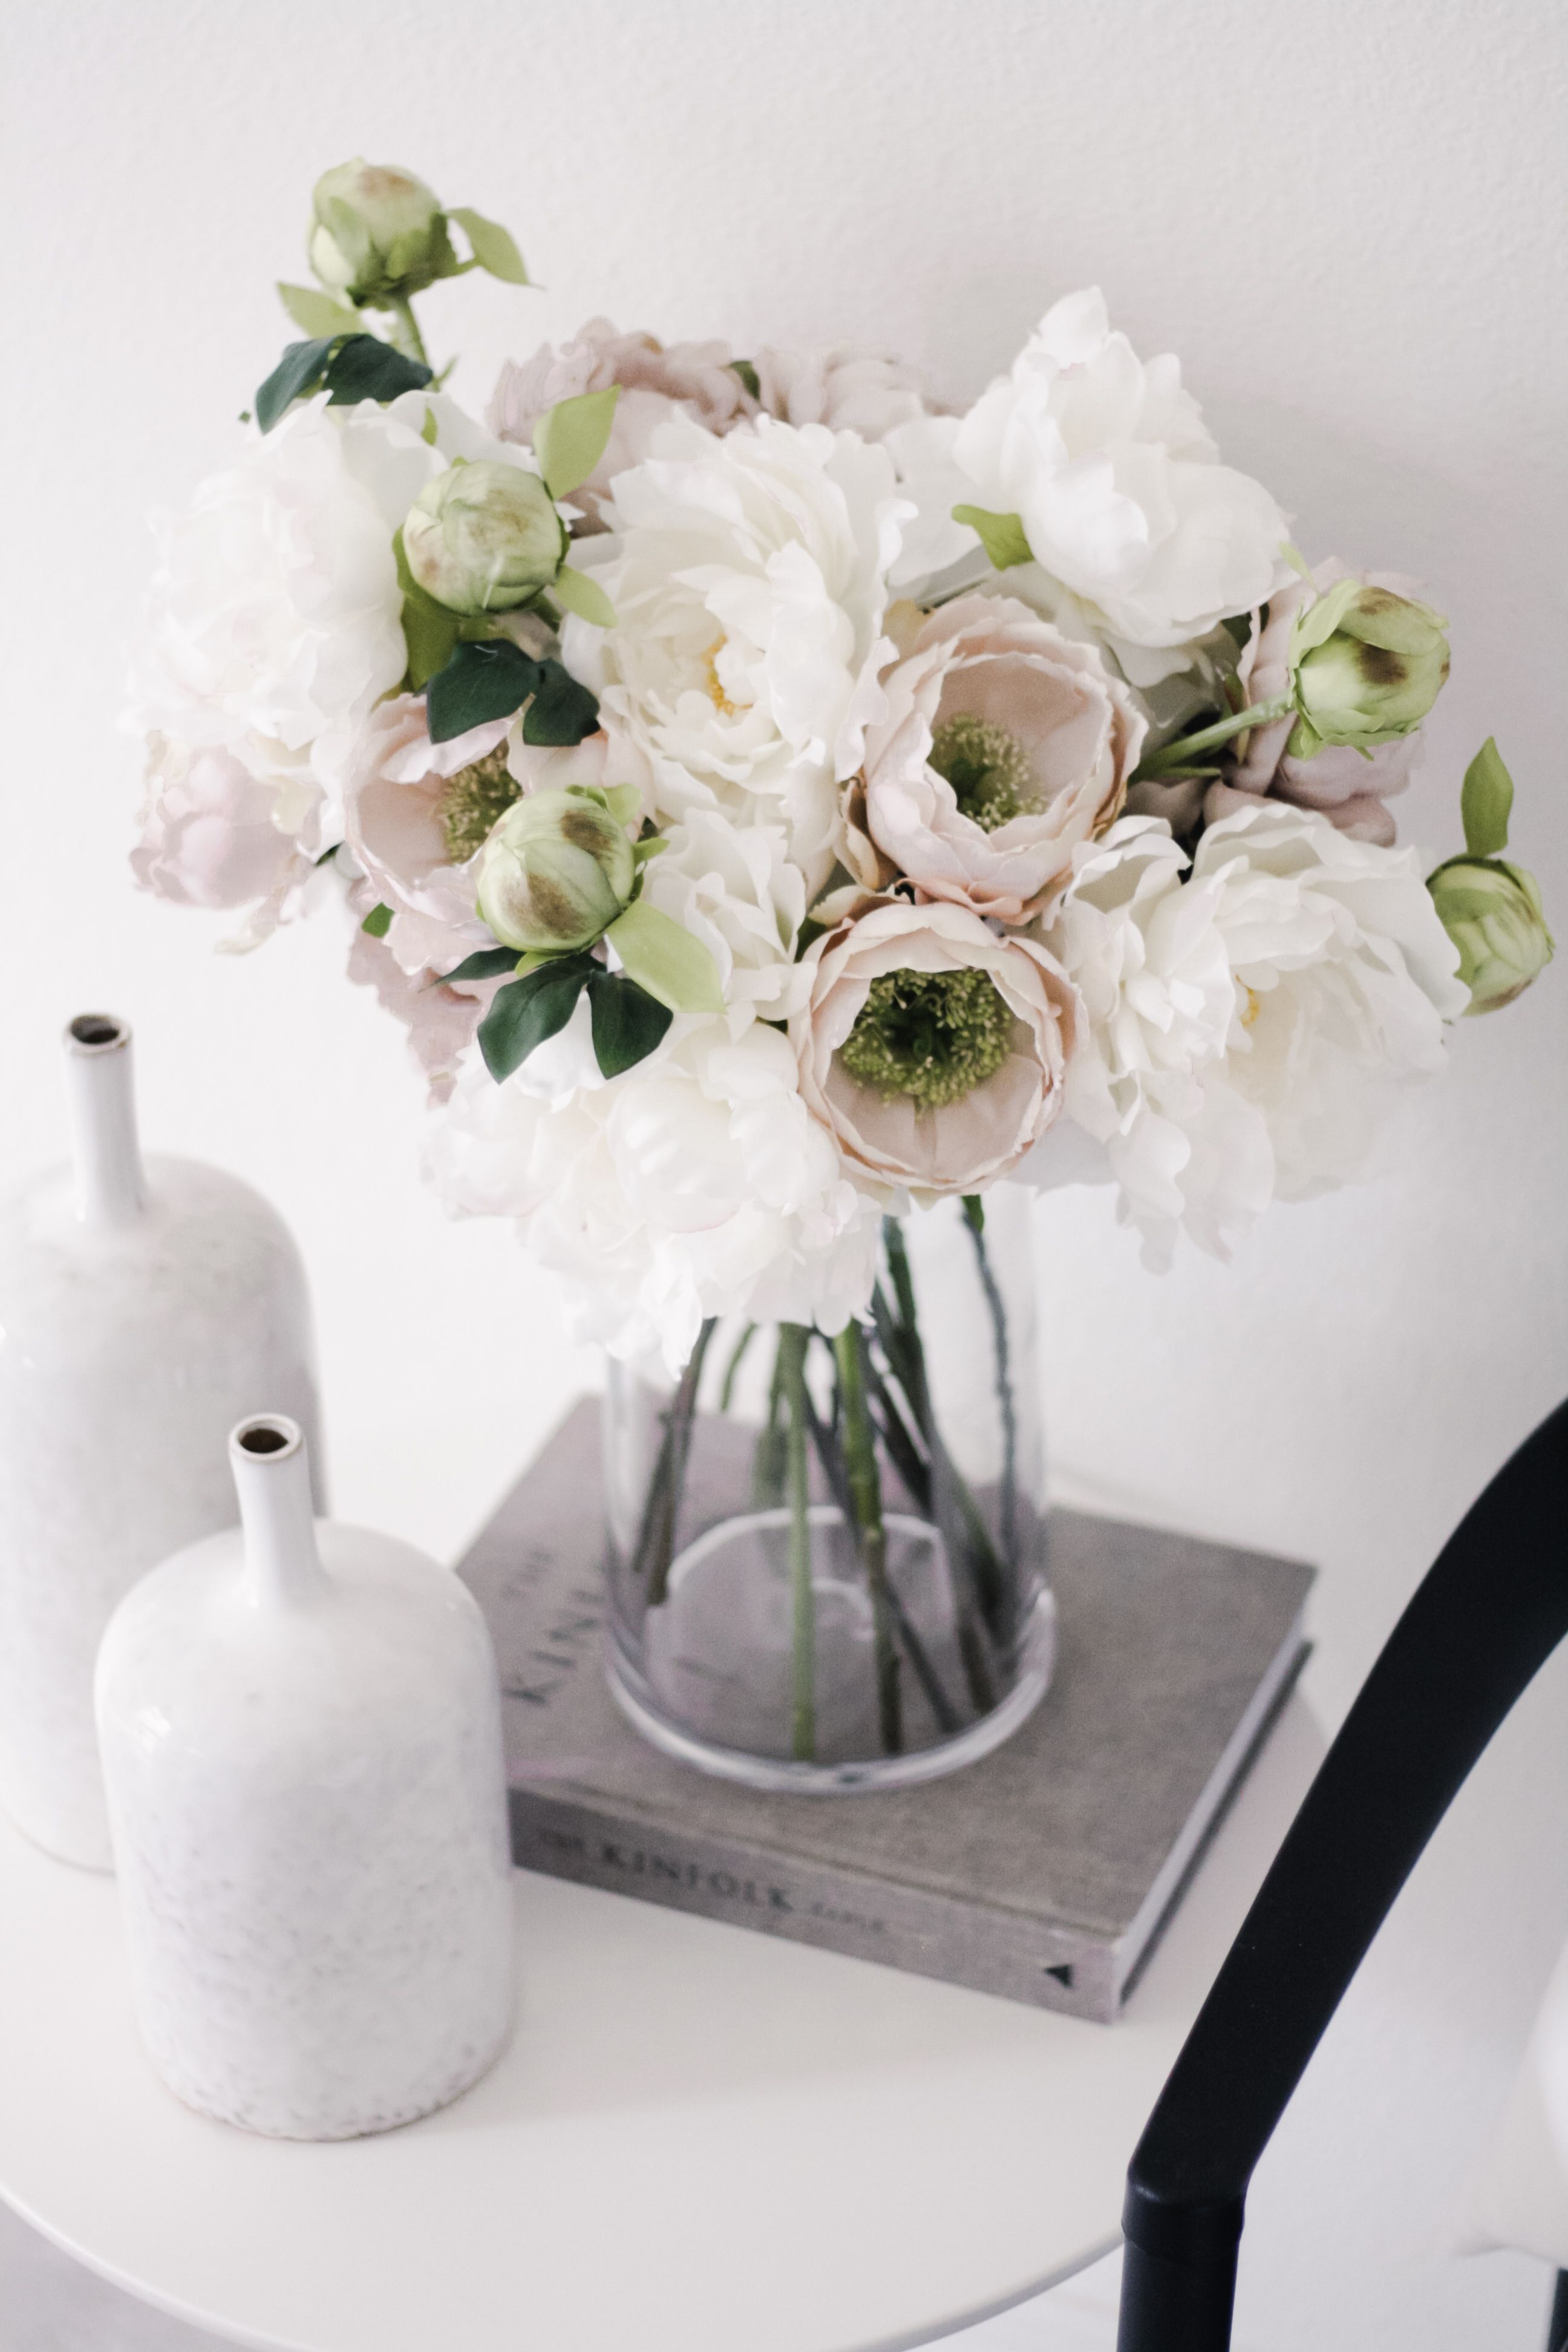 White Artificial Peony Flower 30 Tall In 2020 Fake Flower Arrangements Fake Flowers Decor Fake Flowers Arrangements